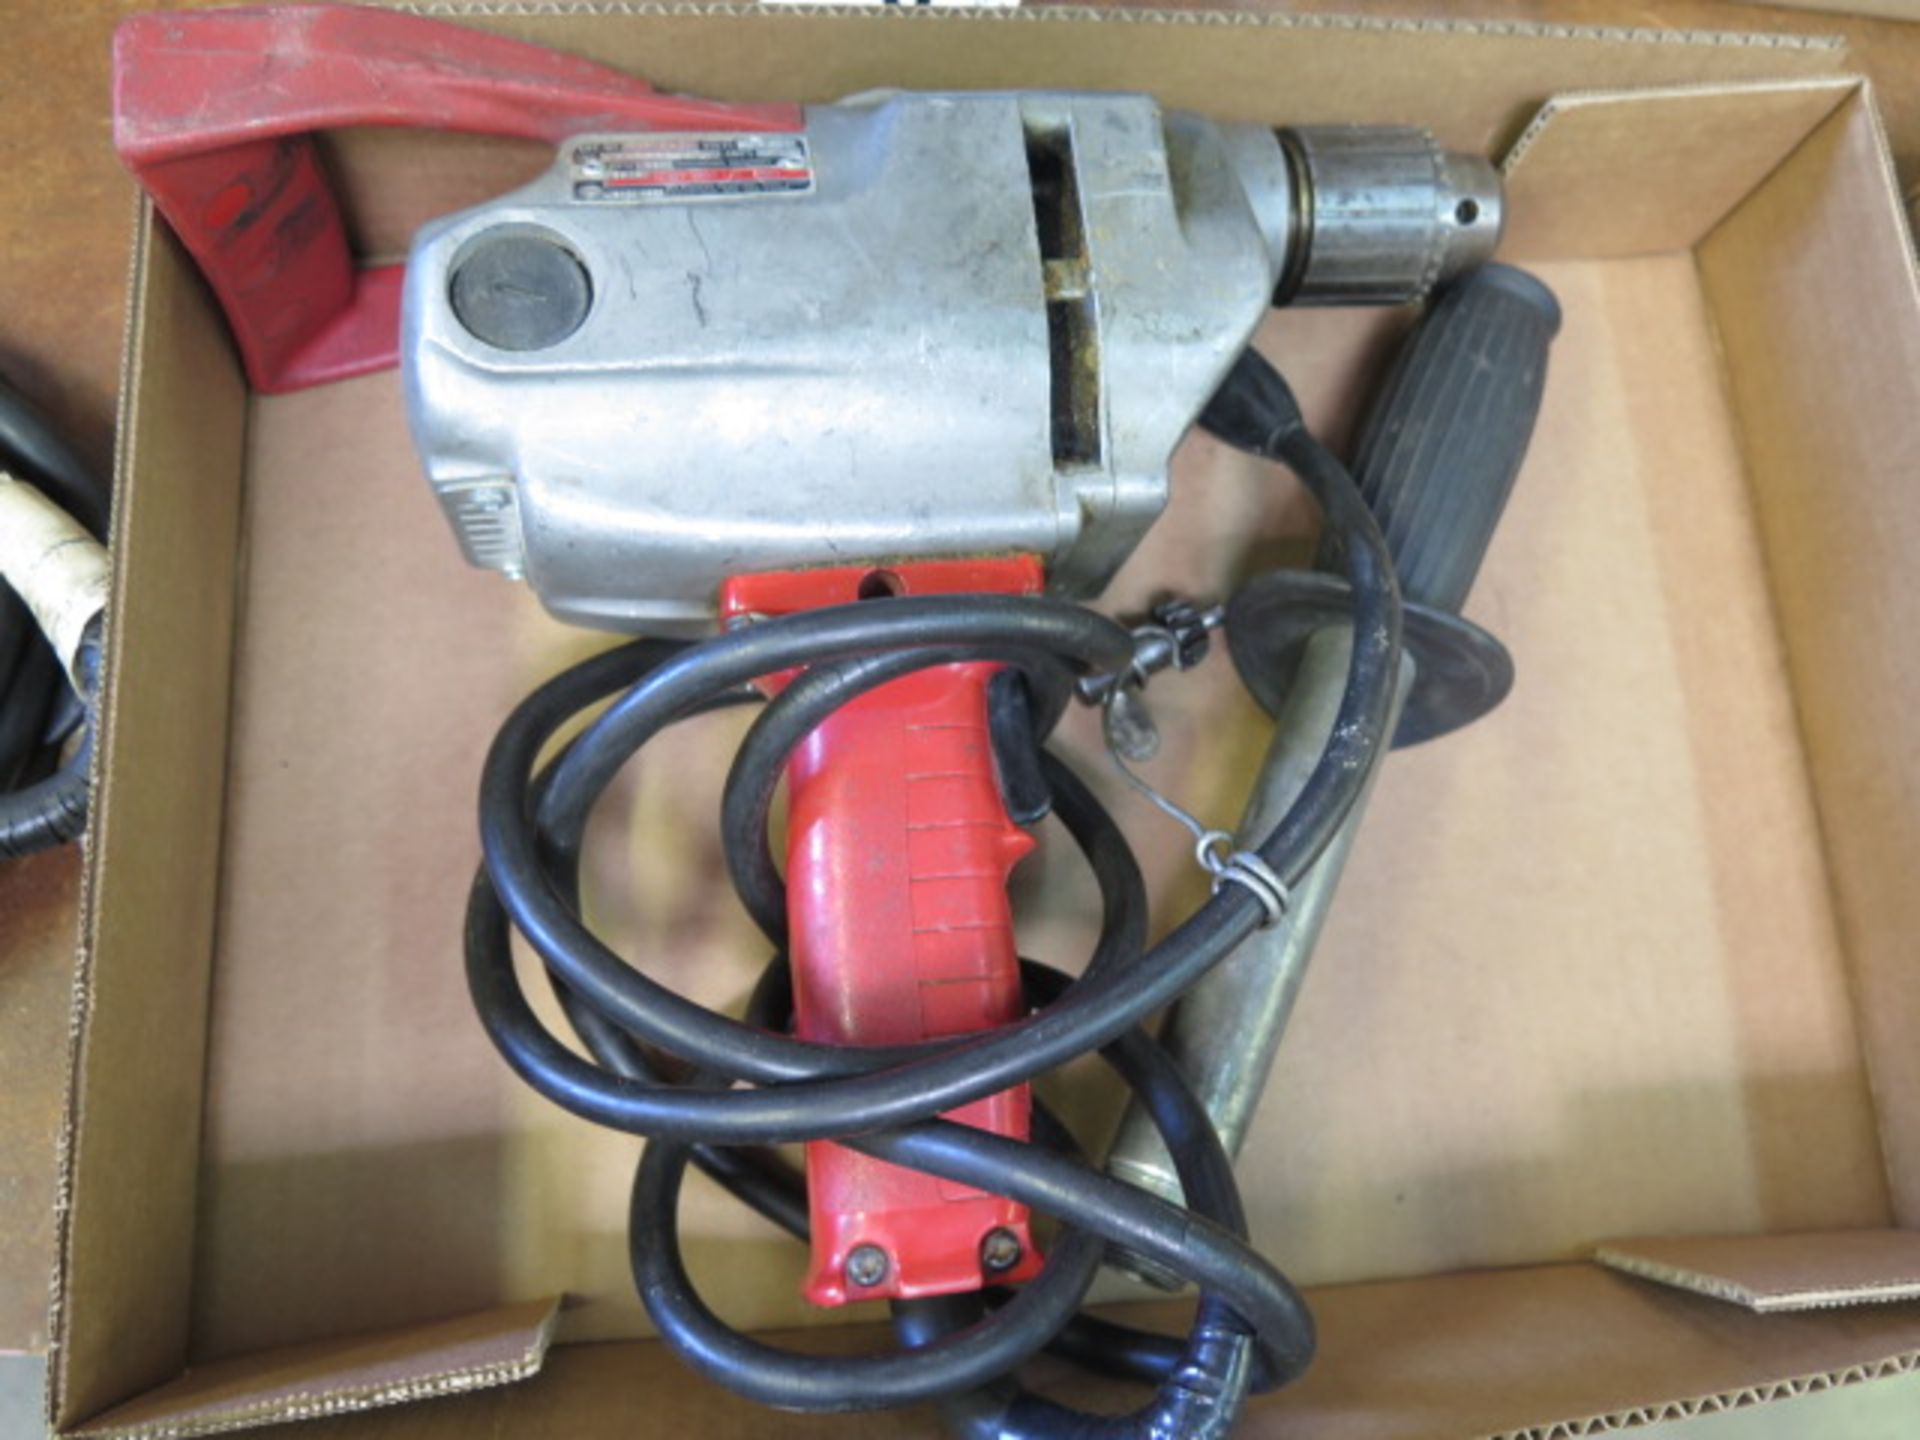 Lot 7 - Milwaukee Power Drill (SOLD AS-IS - NO WARRANTY)